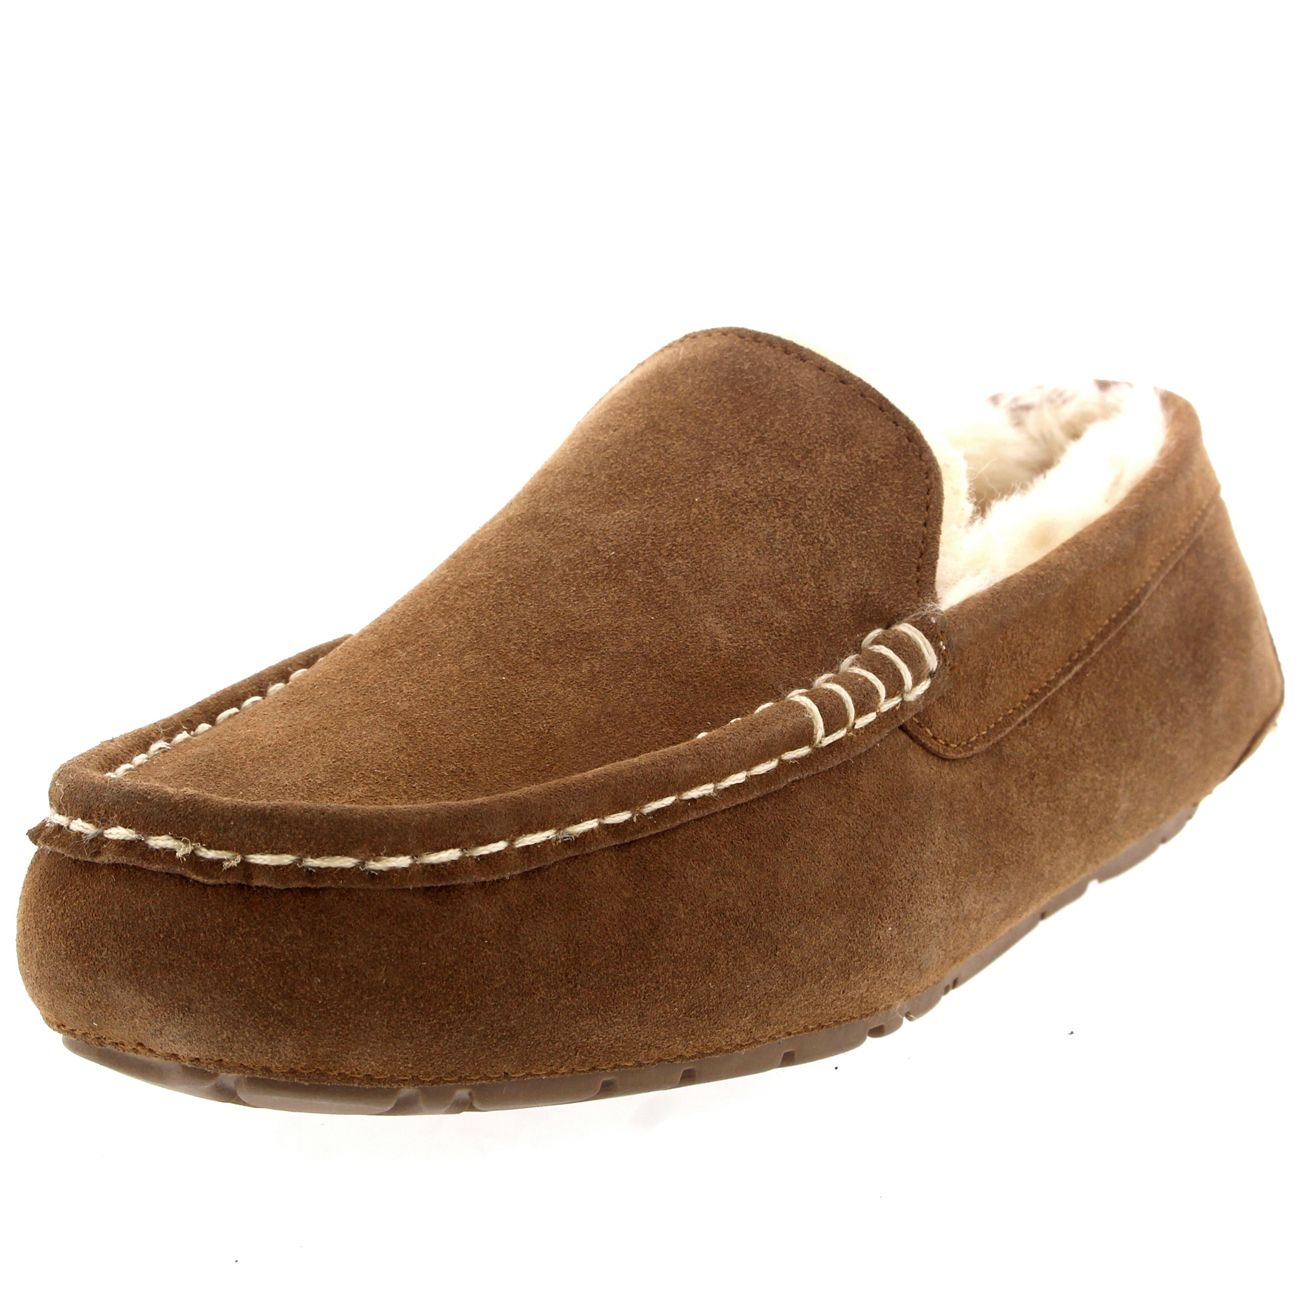 Slippers Australia Mens Genuine Australian Suede Sheepskin Fur Loafers